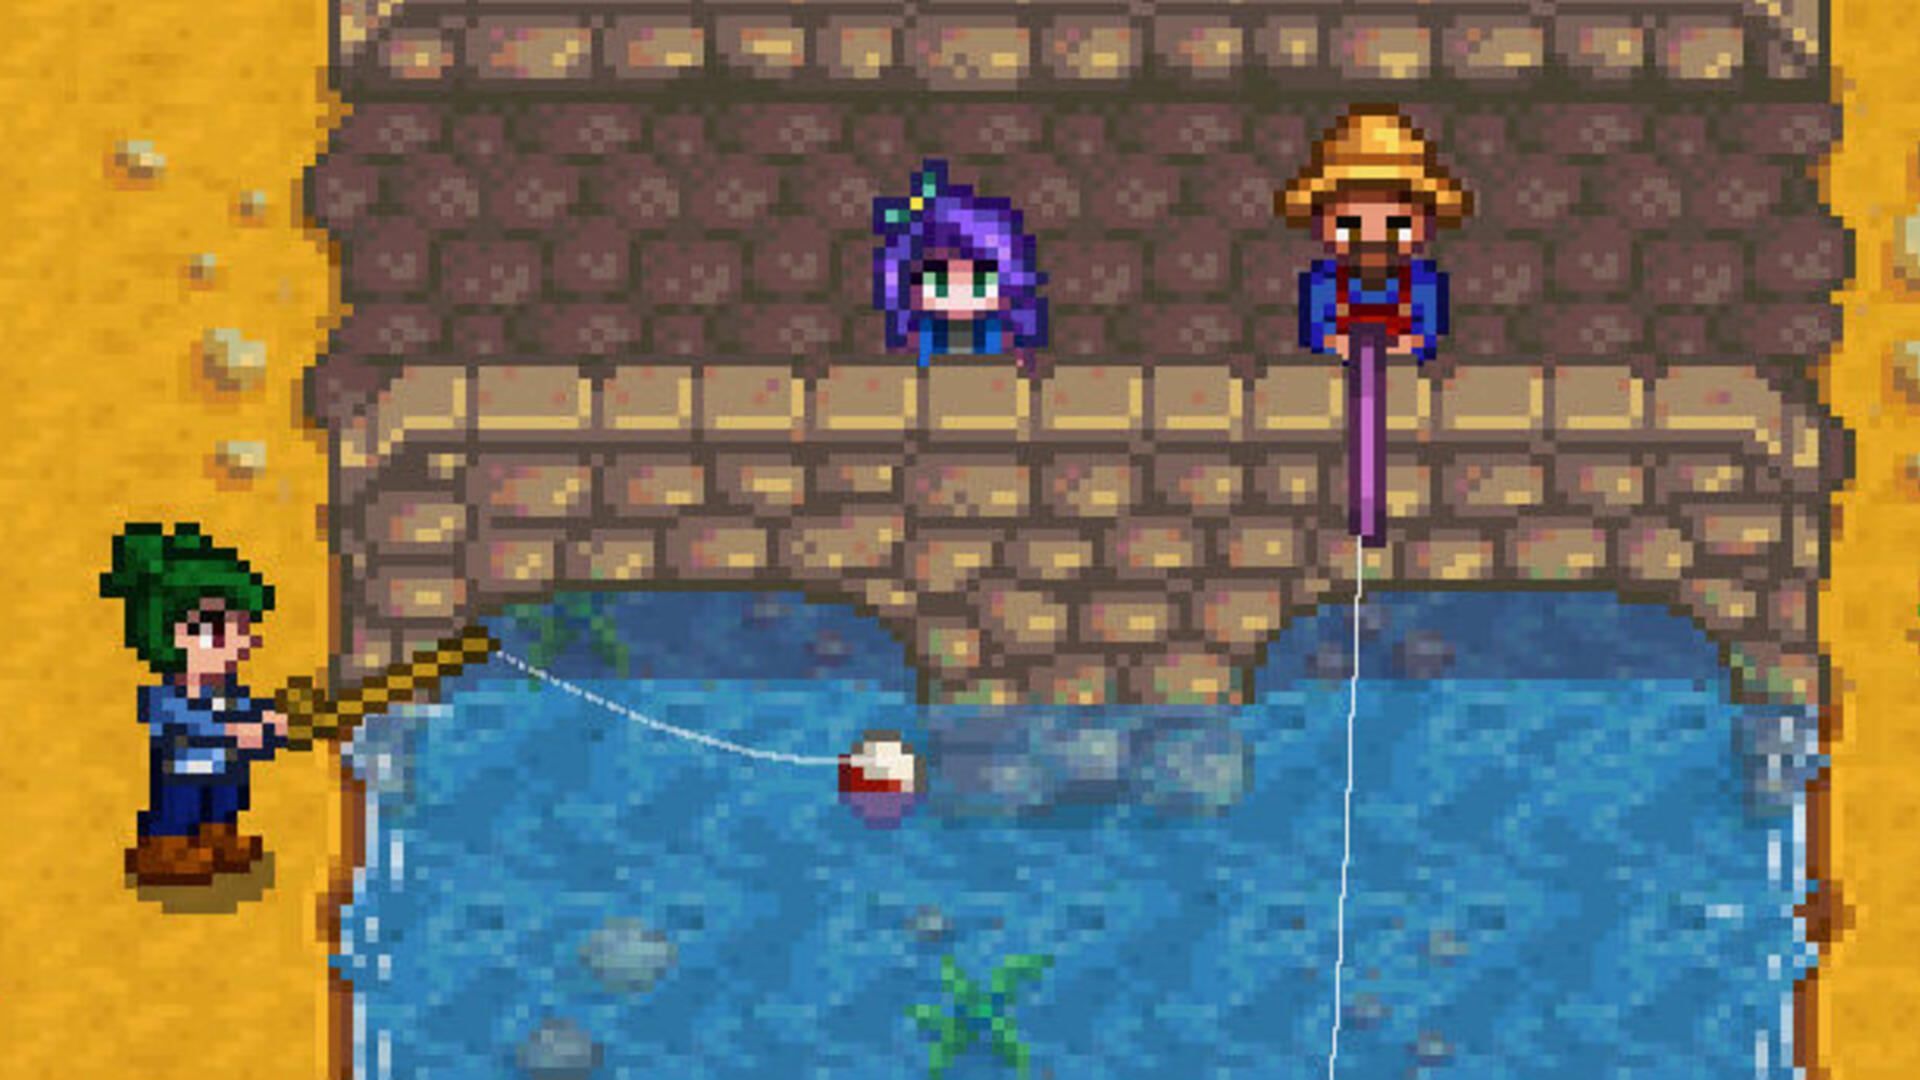 Stardew Valley's Multiplayer Update Goes Live Today on PC, Allowing Player Marriages and More